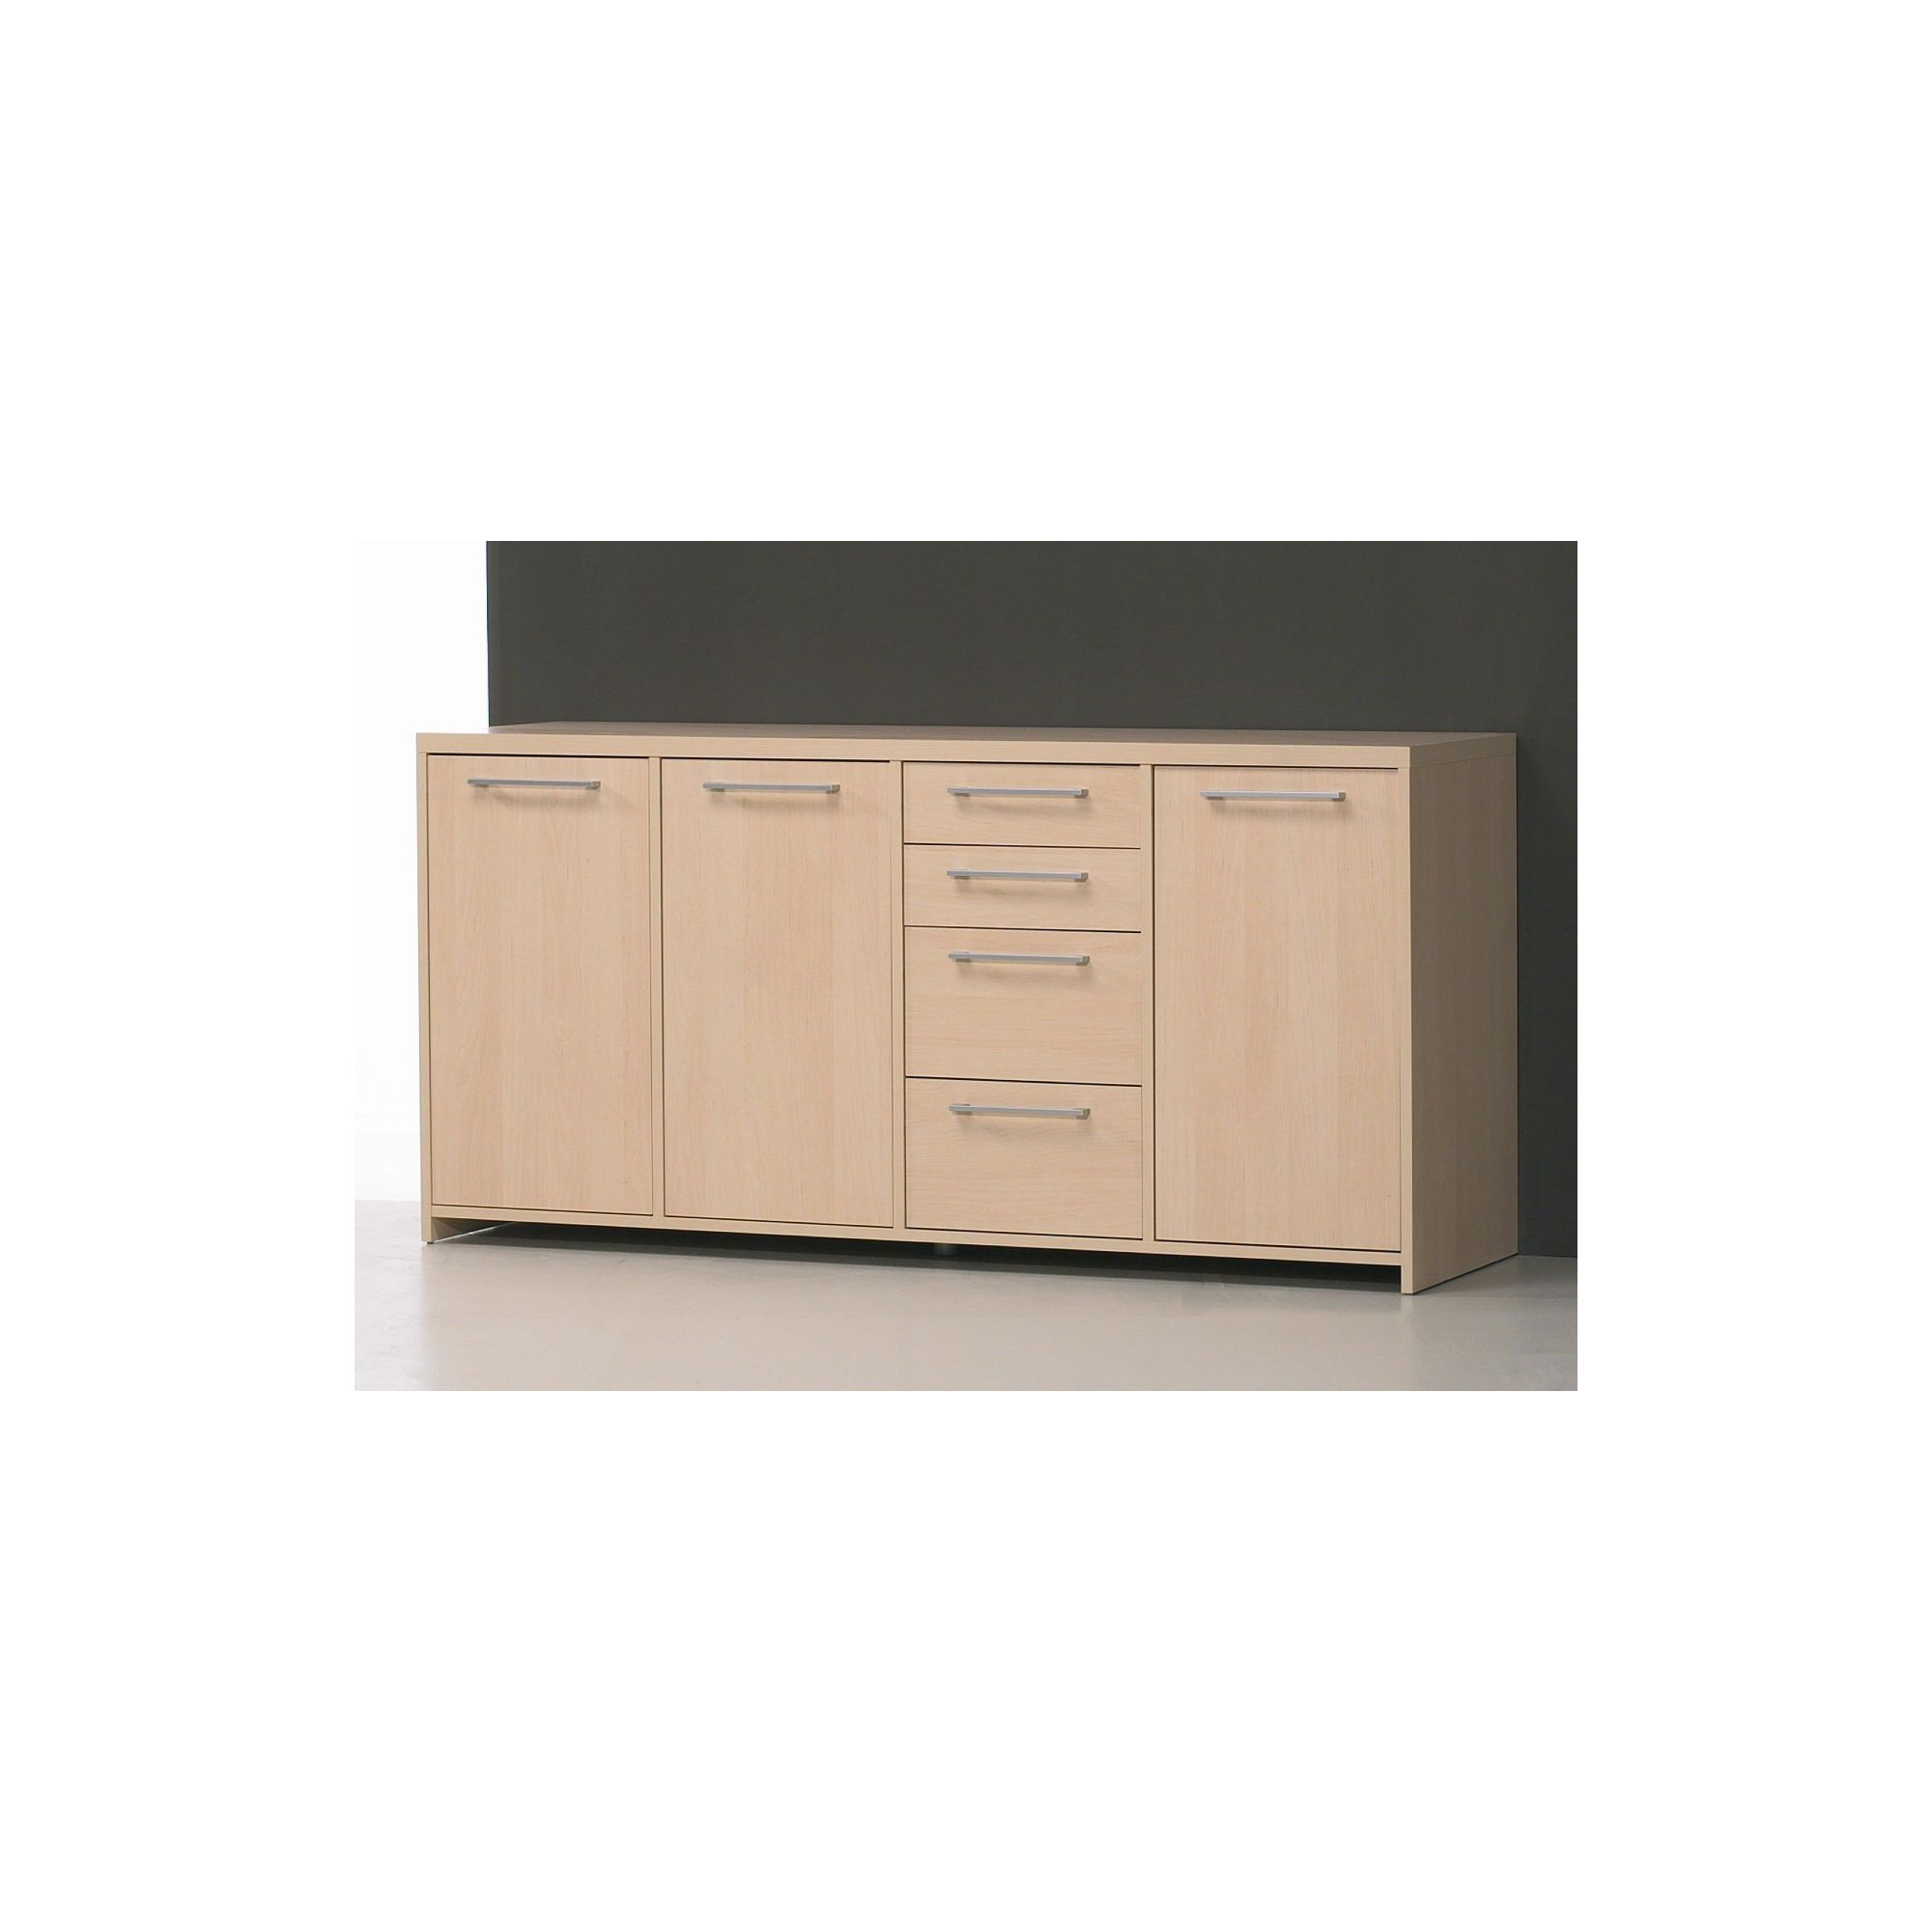 Tvilum Buffer Sideboard in Light Maple - Light Cherry at Tesco Direct